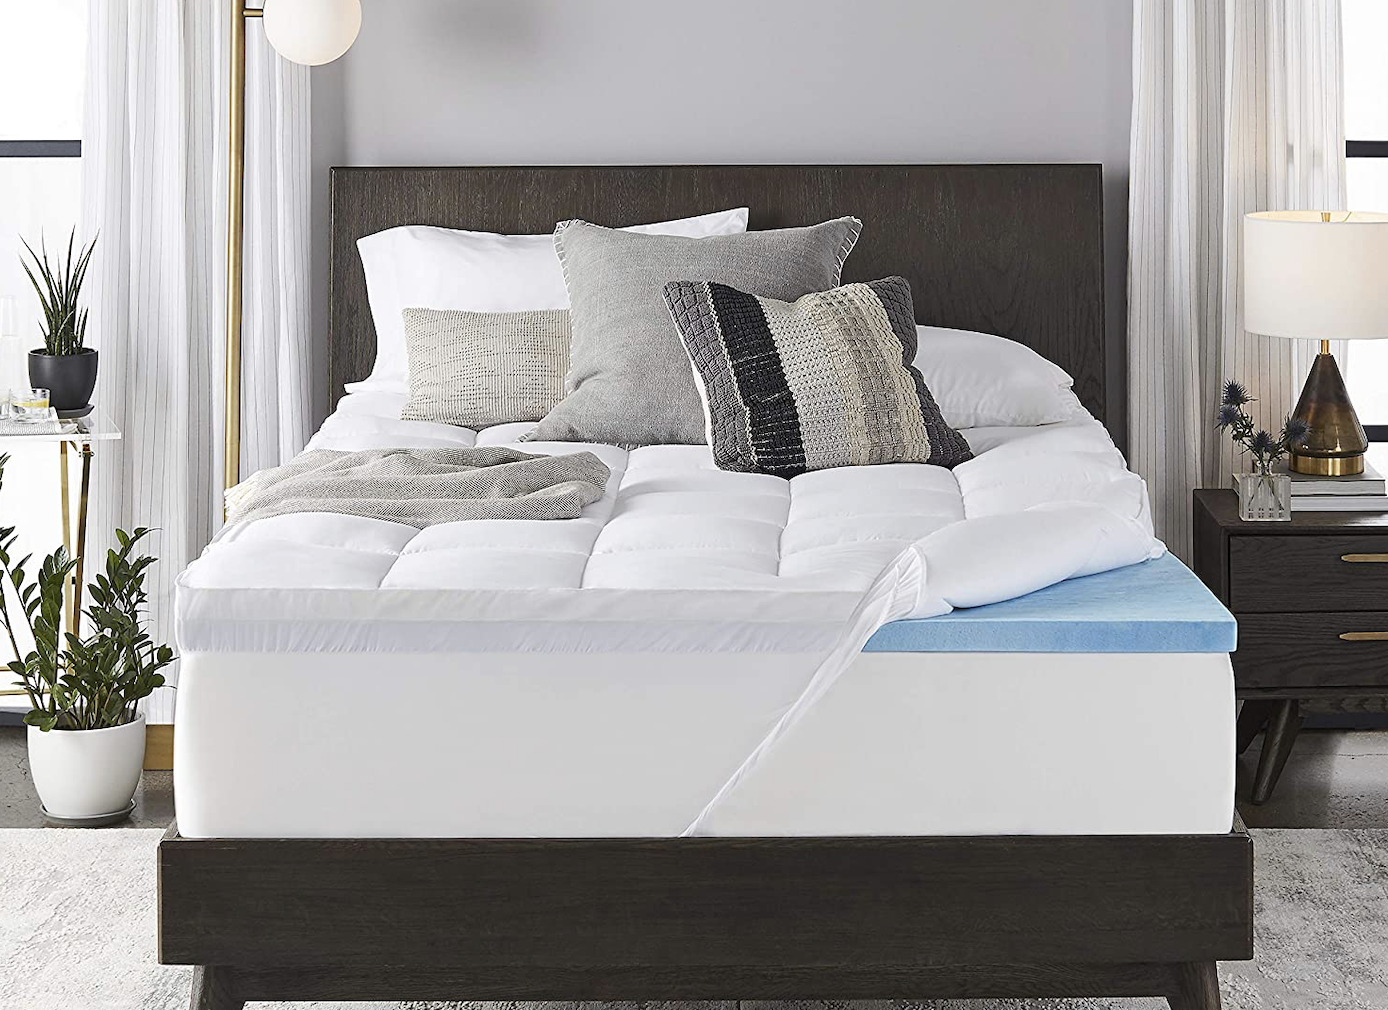 Best Foam Mattress Toppers For Every Bed Top Picks For Better Sleep Rolling Stone